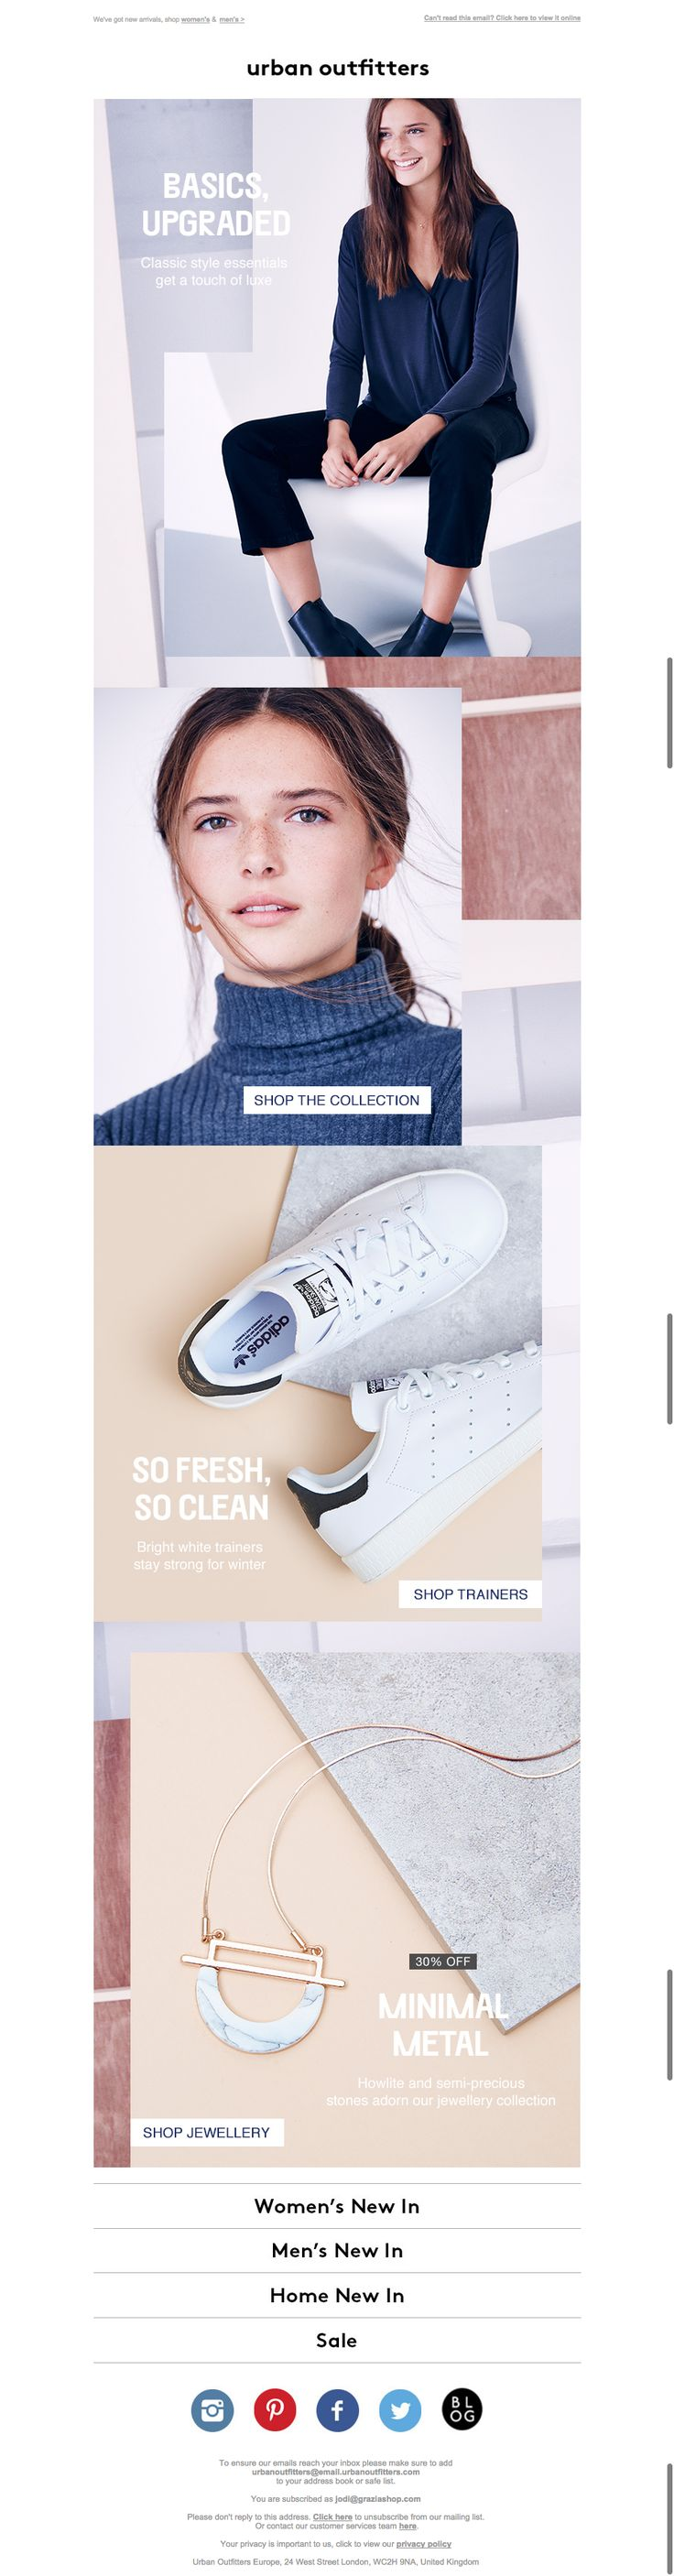 urban outfitters fashion email